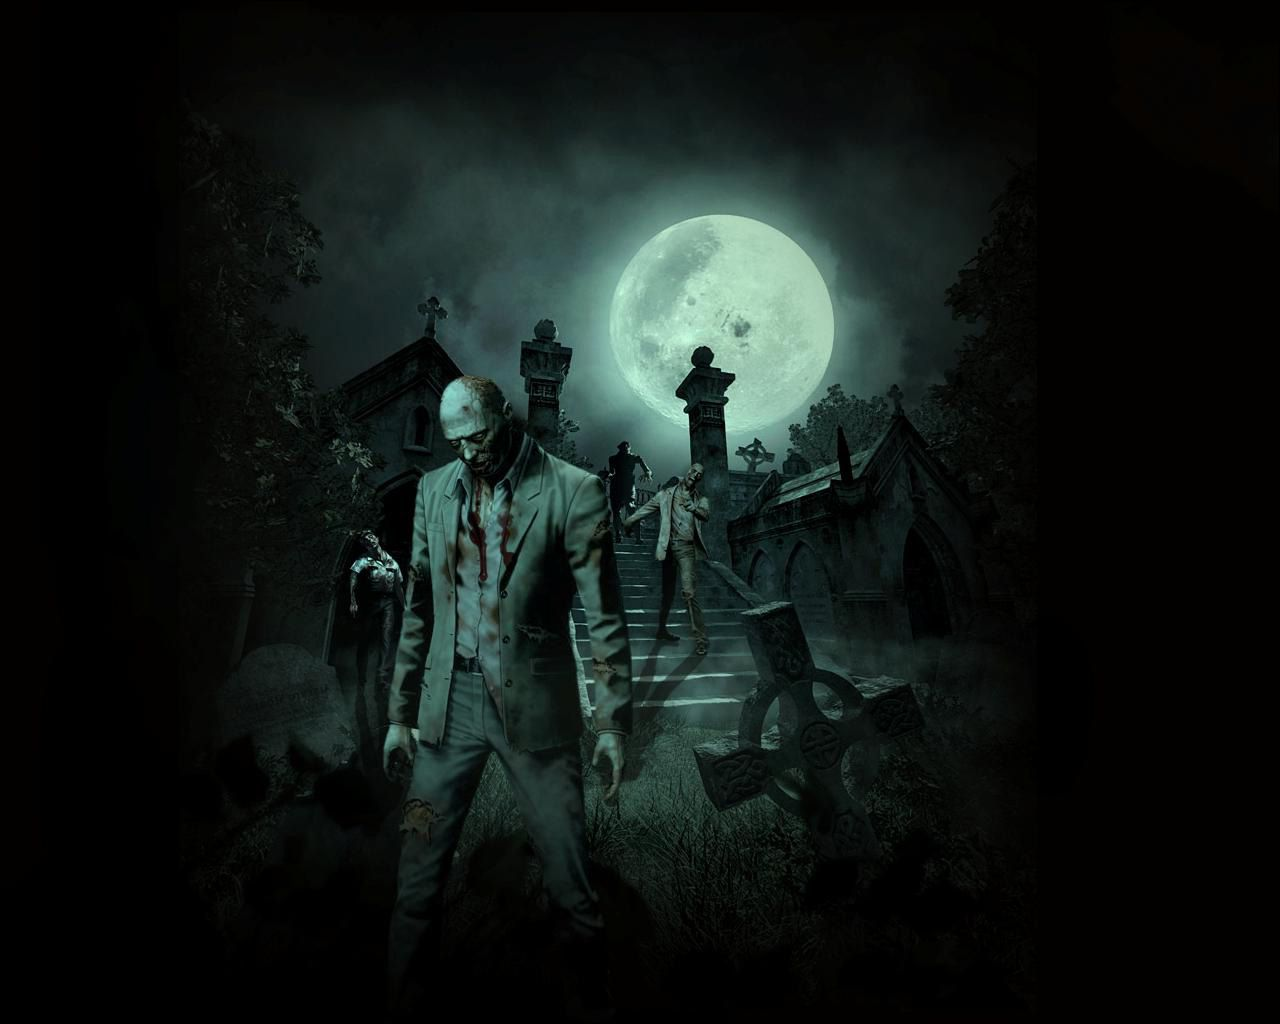 Zombie Theme Horror Wallpapers Barbara S Desktop Wallpapers In Hd Scary Wallpaper Halloween Wallpaper Horror Wallpapers Hd